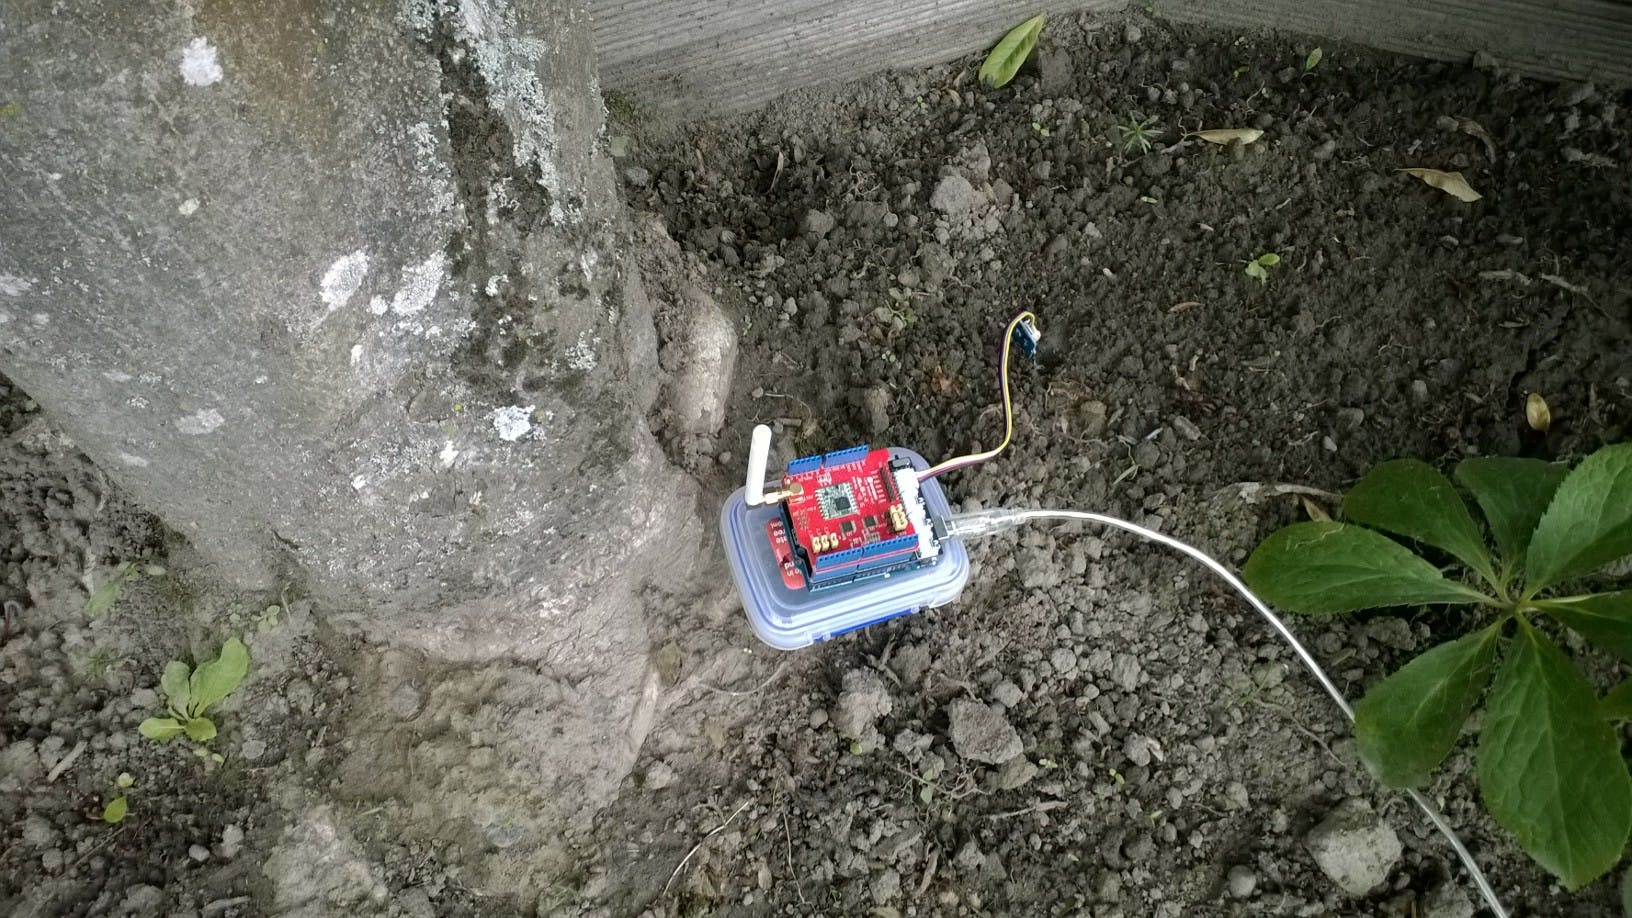 Duino device deployed in my yard for testing